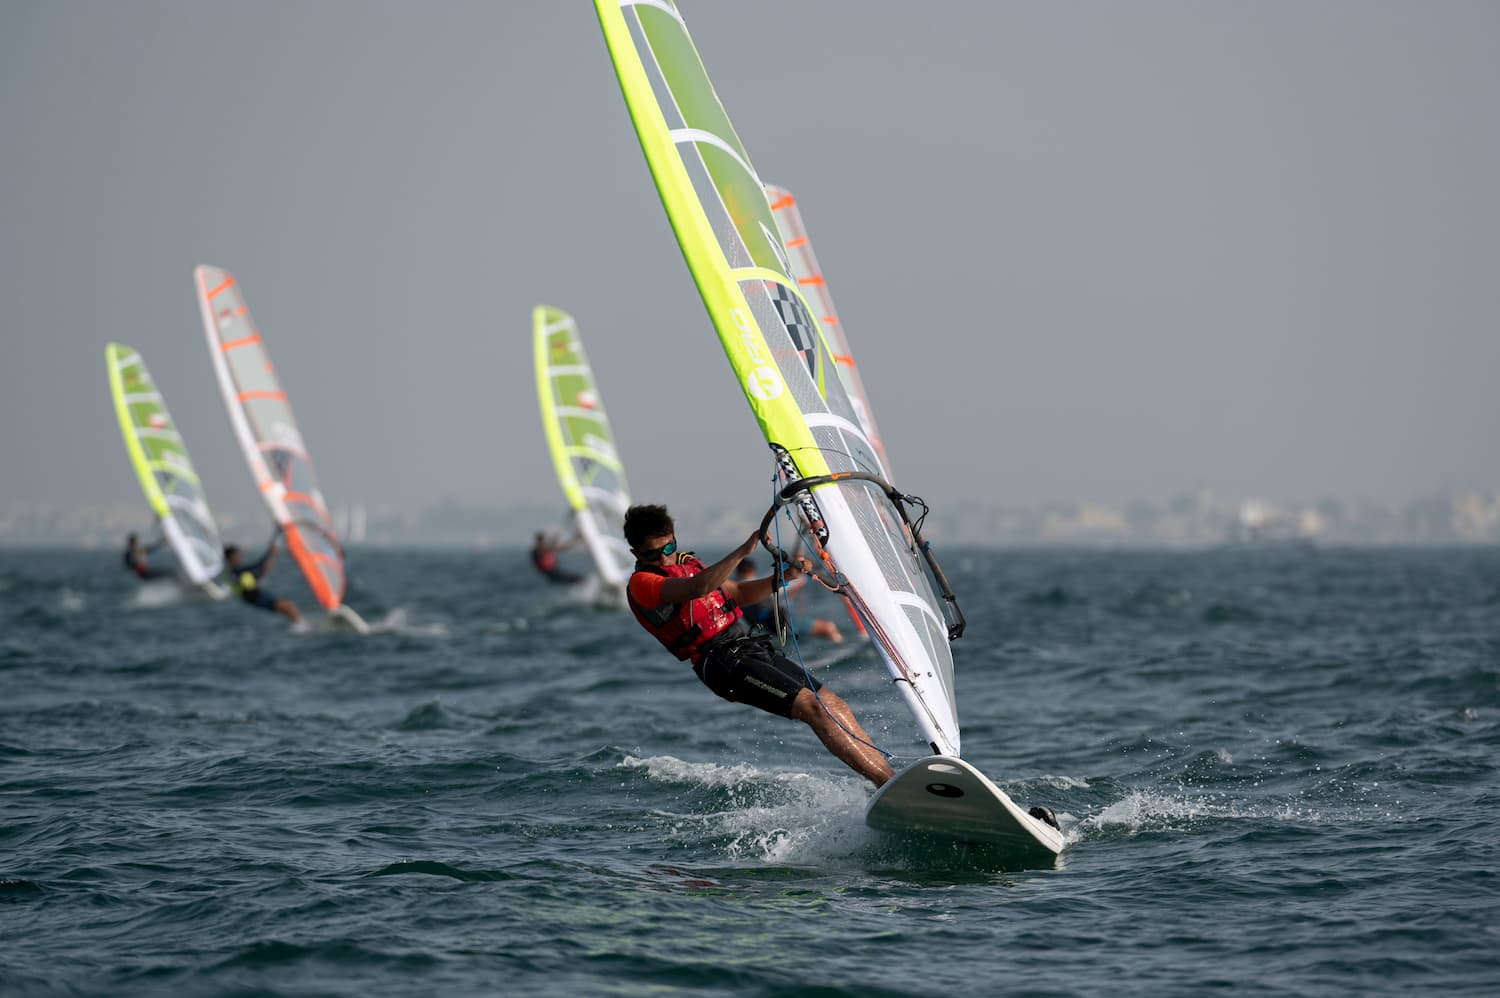 Oman Sail to host 2021 Asian Windsurfing Championships in Musandam